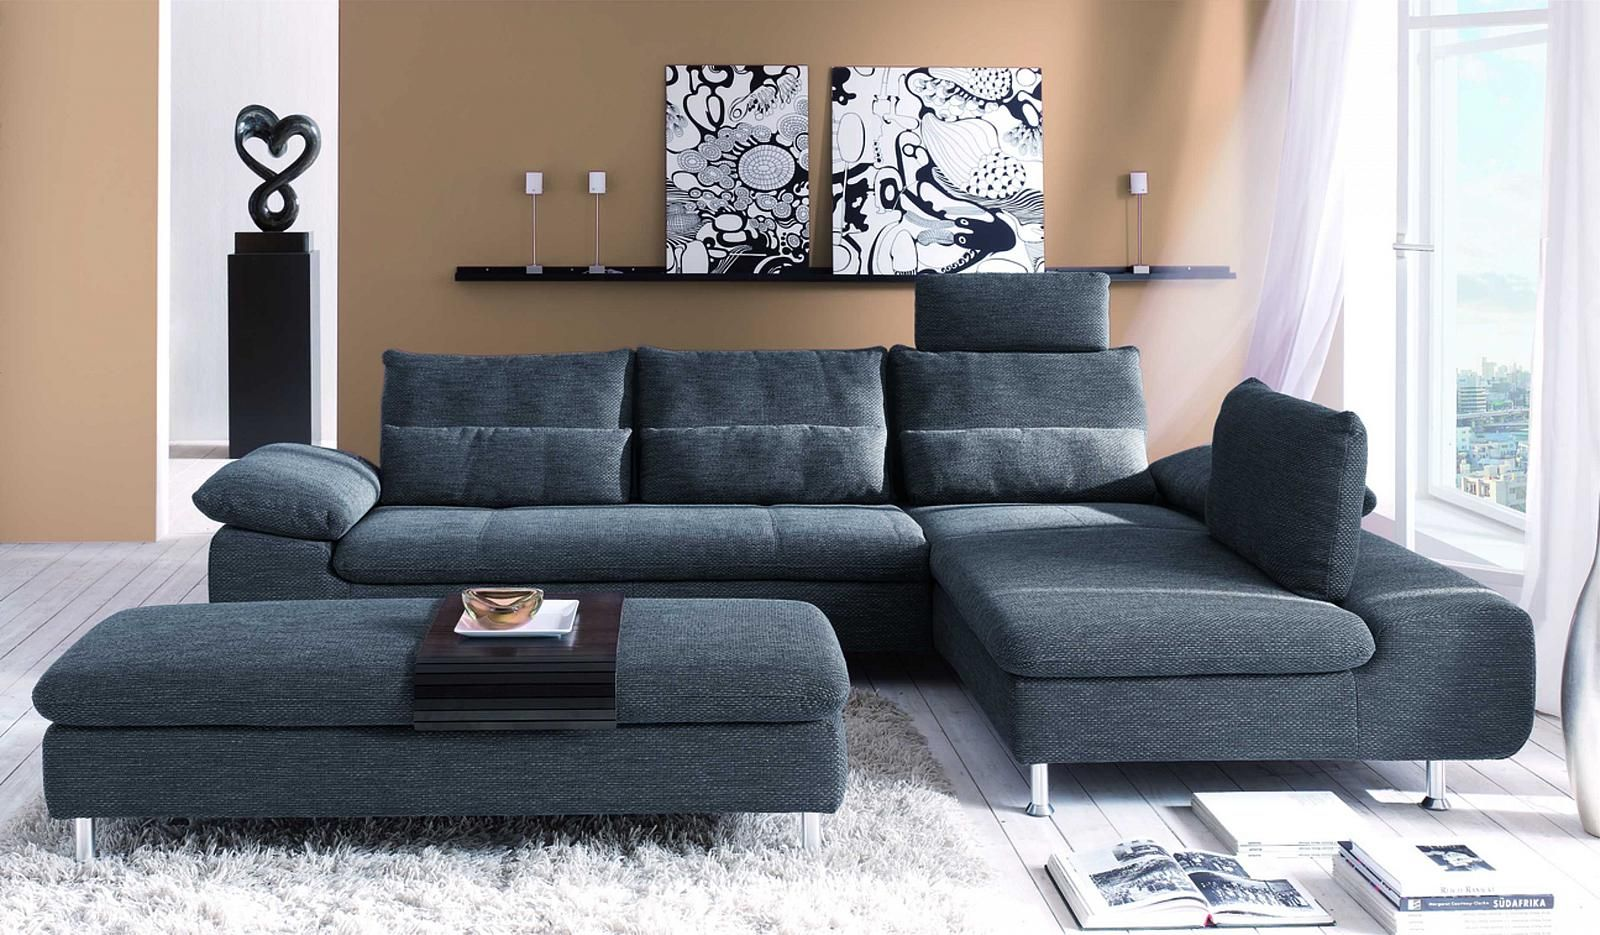 m bel weirauch oldenburg m bel a z couches sofas ecksofas ecksofa mit relaxverstellung. Black Bedroom Furniture Sets. Home Design Ideas